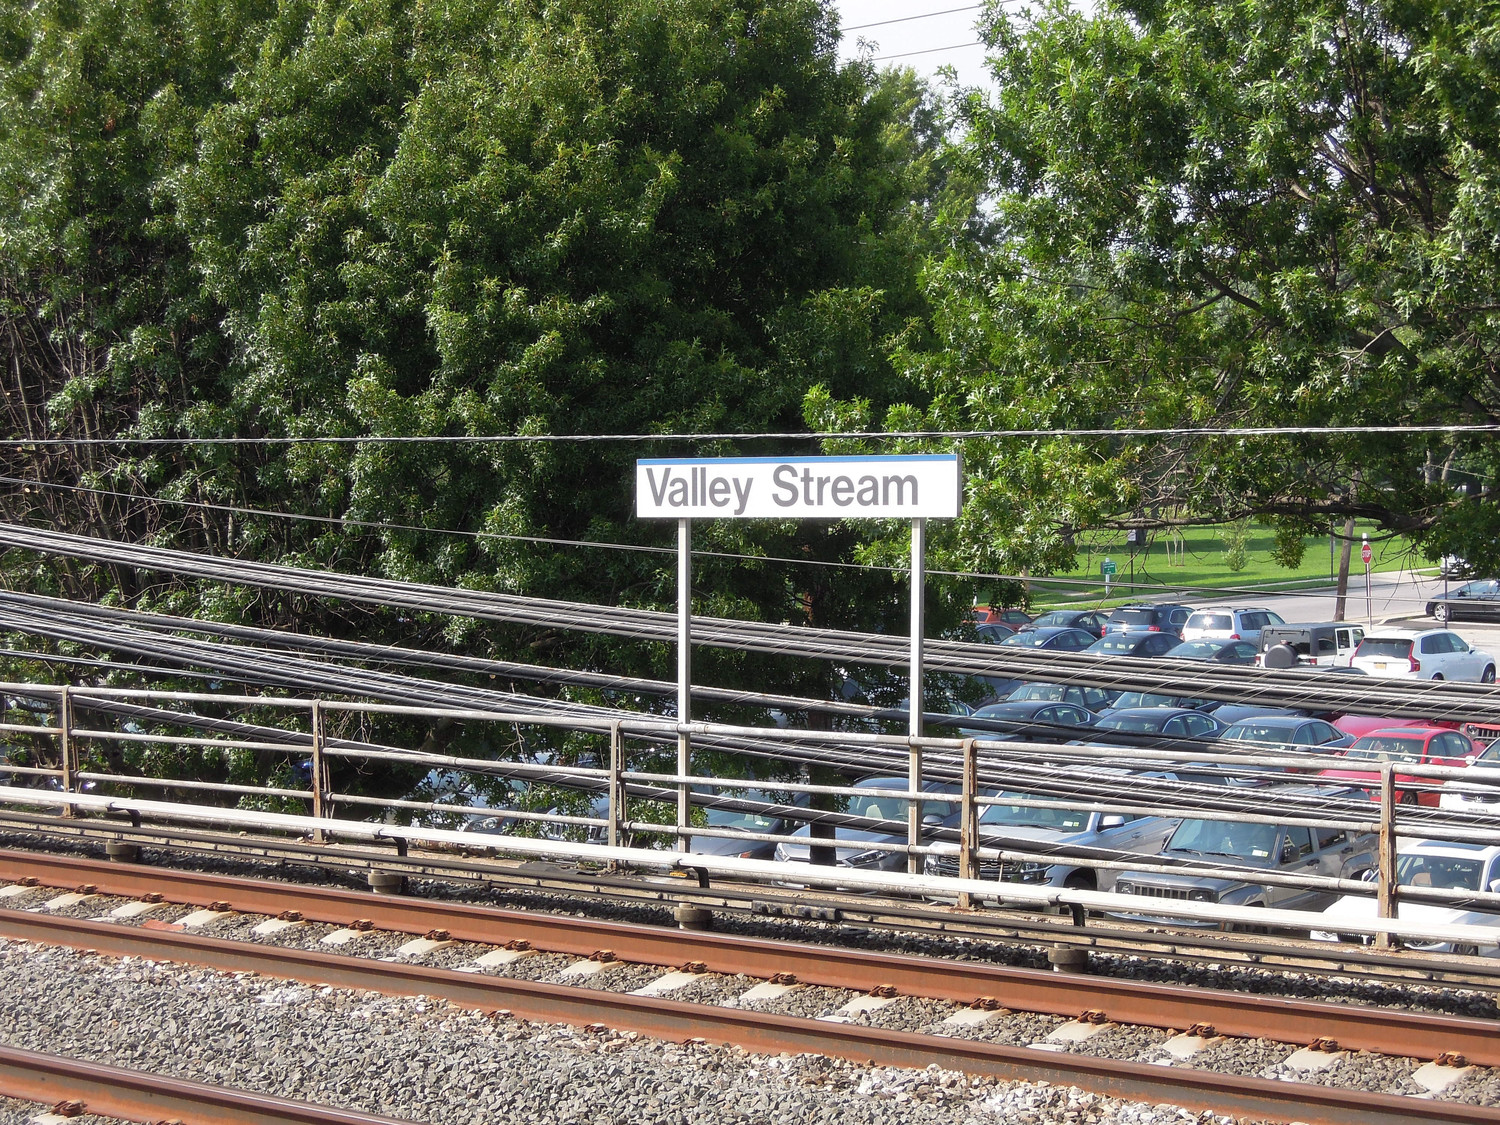 Commuters complained of inadequate parking last week at the Valley Stream station.